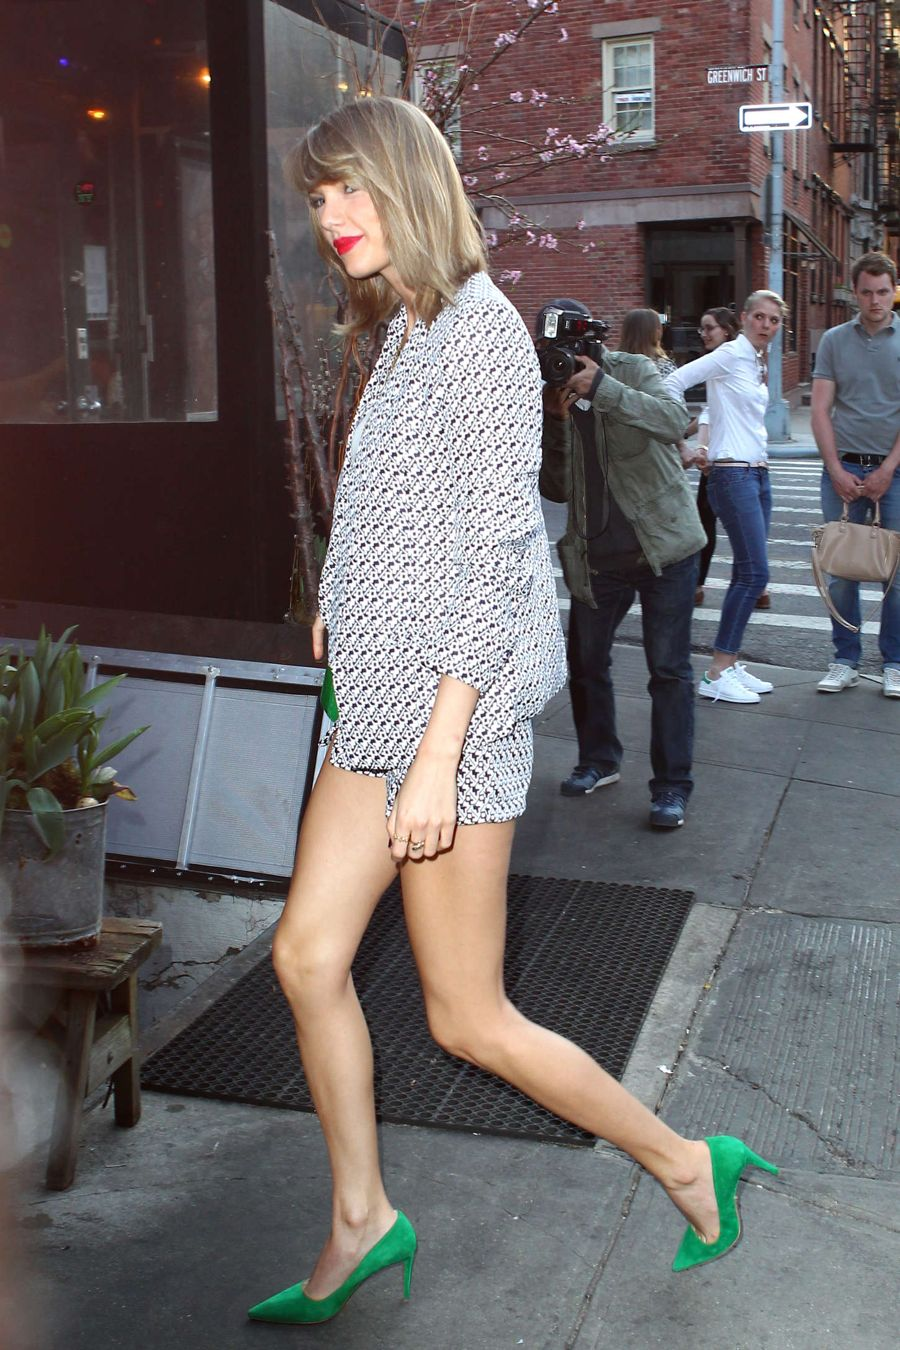 Taylor Swift Heads to the Spotted Pig Restaurant in NYC